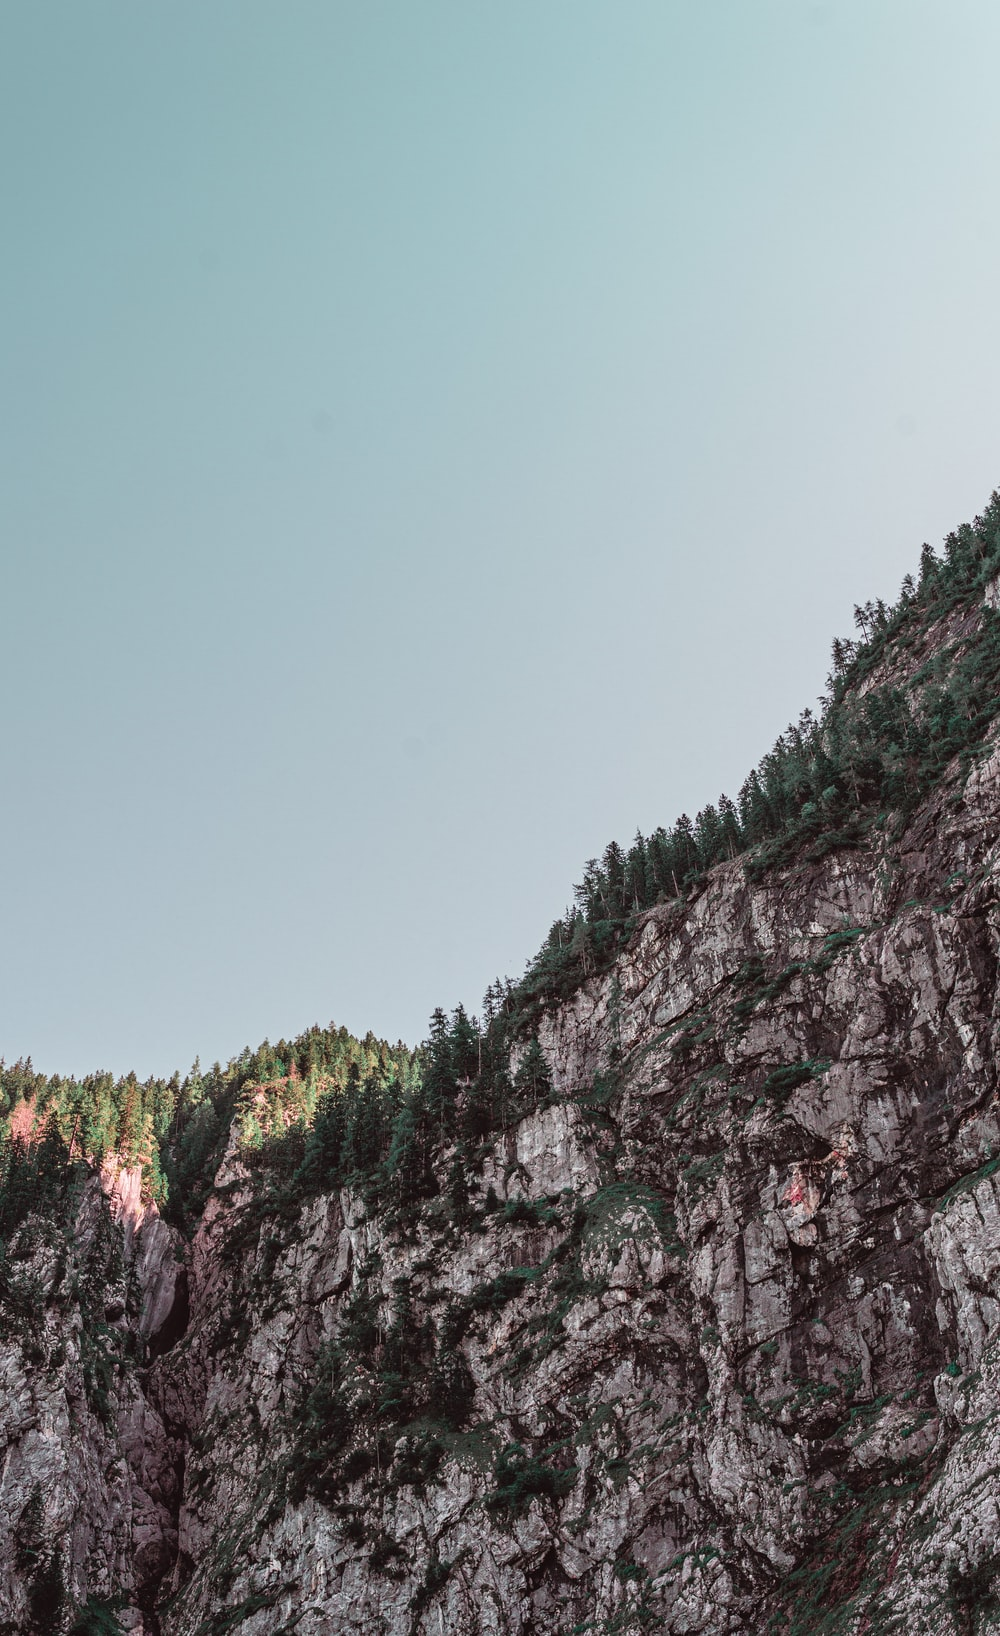 pine trees on rock formation